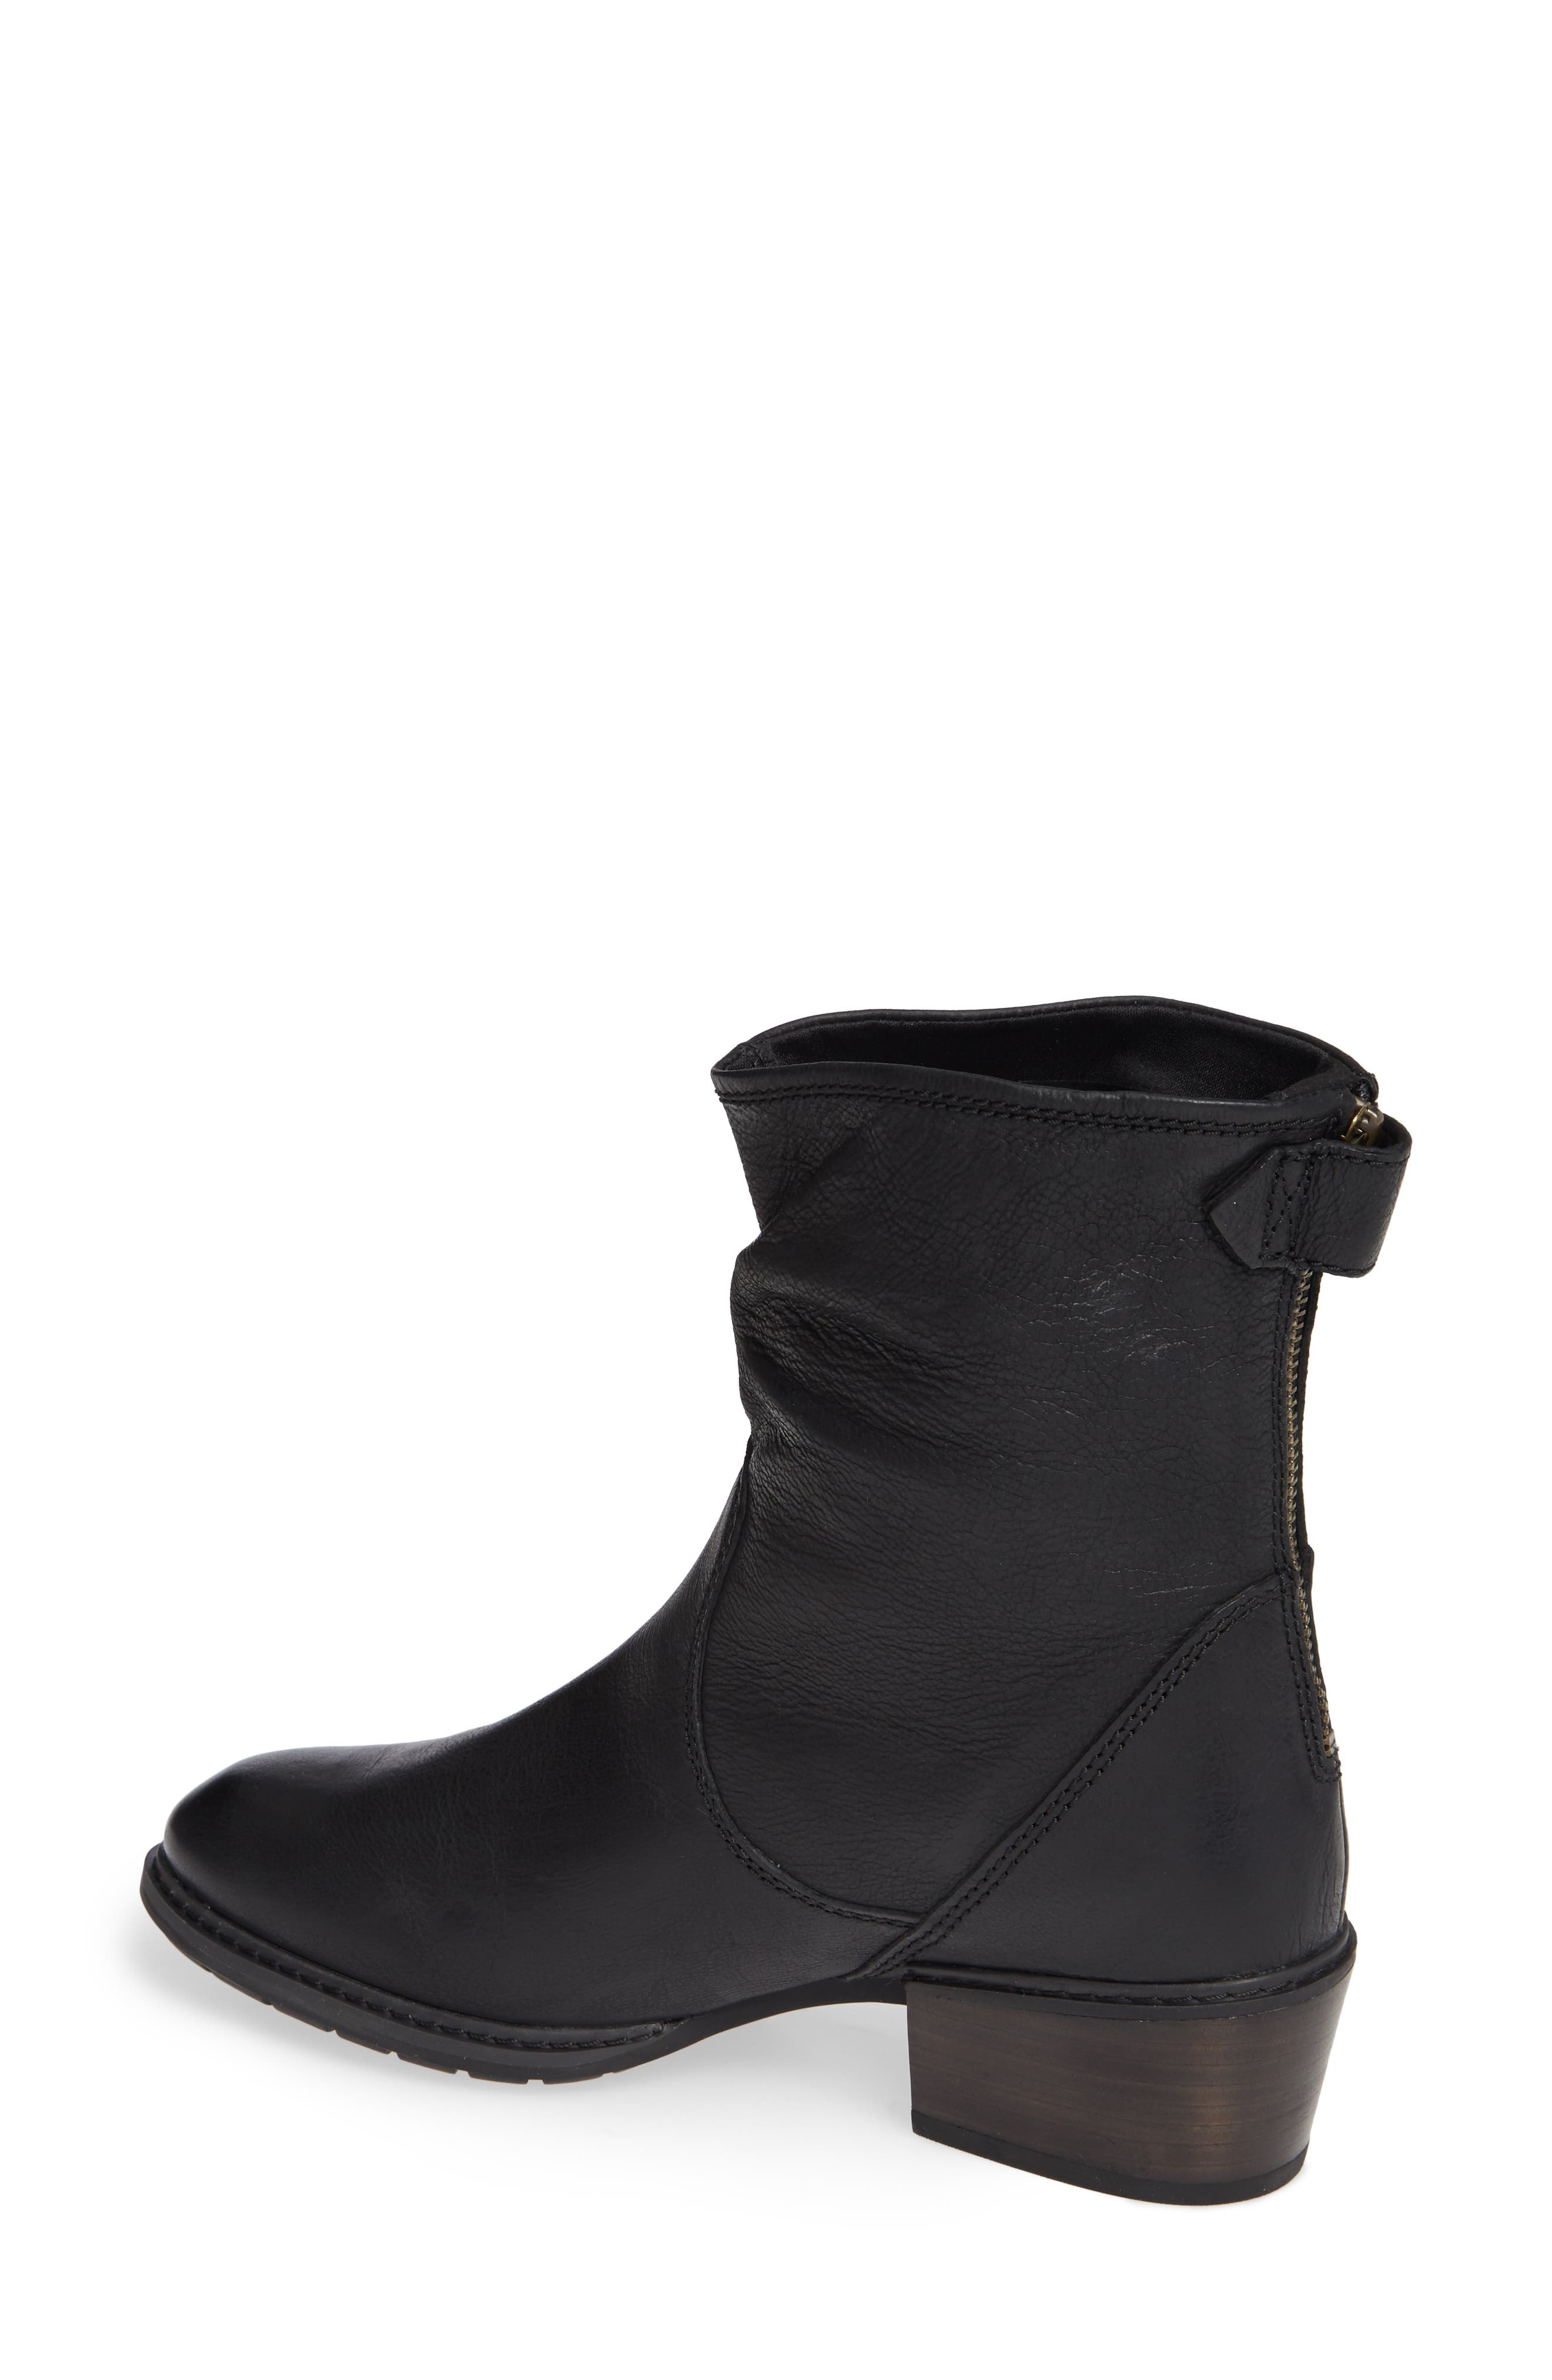 Sutherlin Bay Water Resistant Bootie,                             Alternate thumbnail 2, color,                             JET BLACK LEATHER